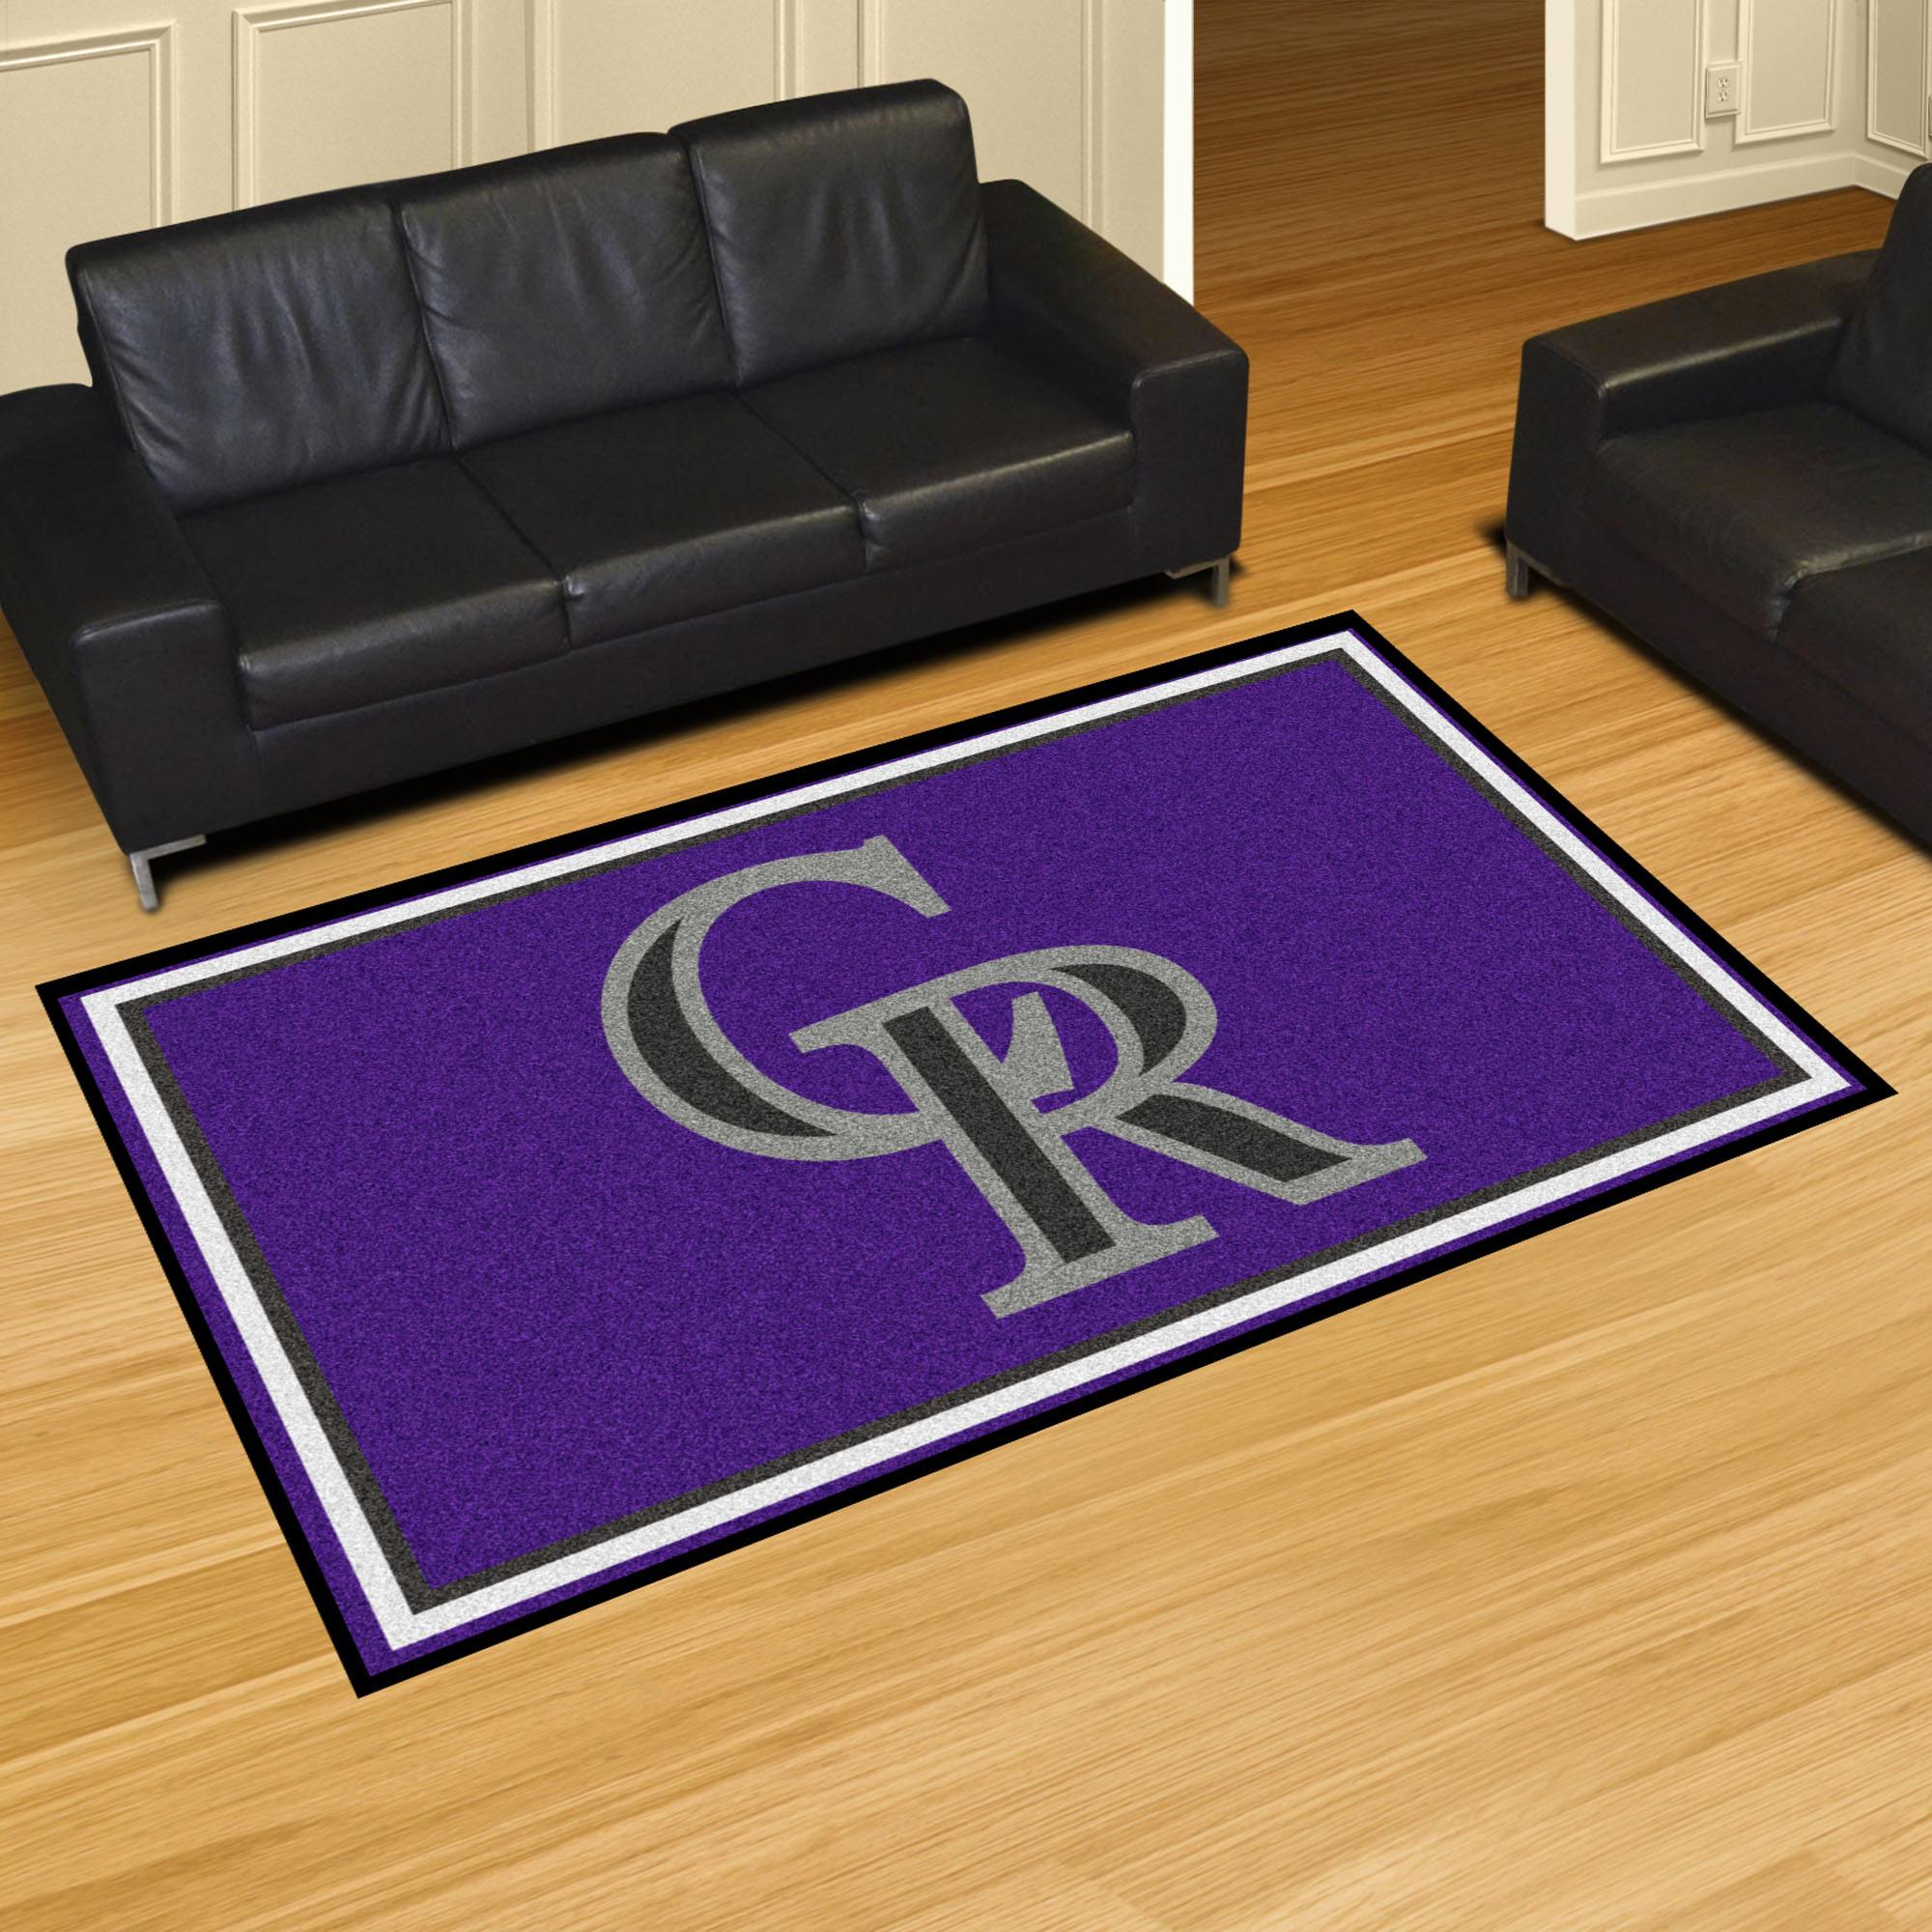 Colorado Rockies 5x8 Area Rug